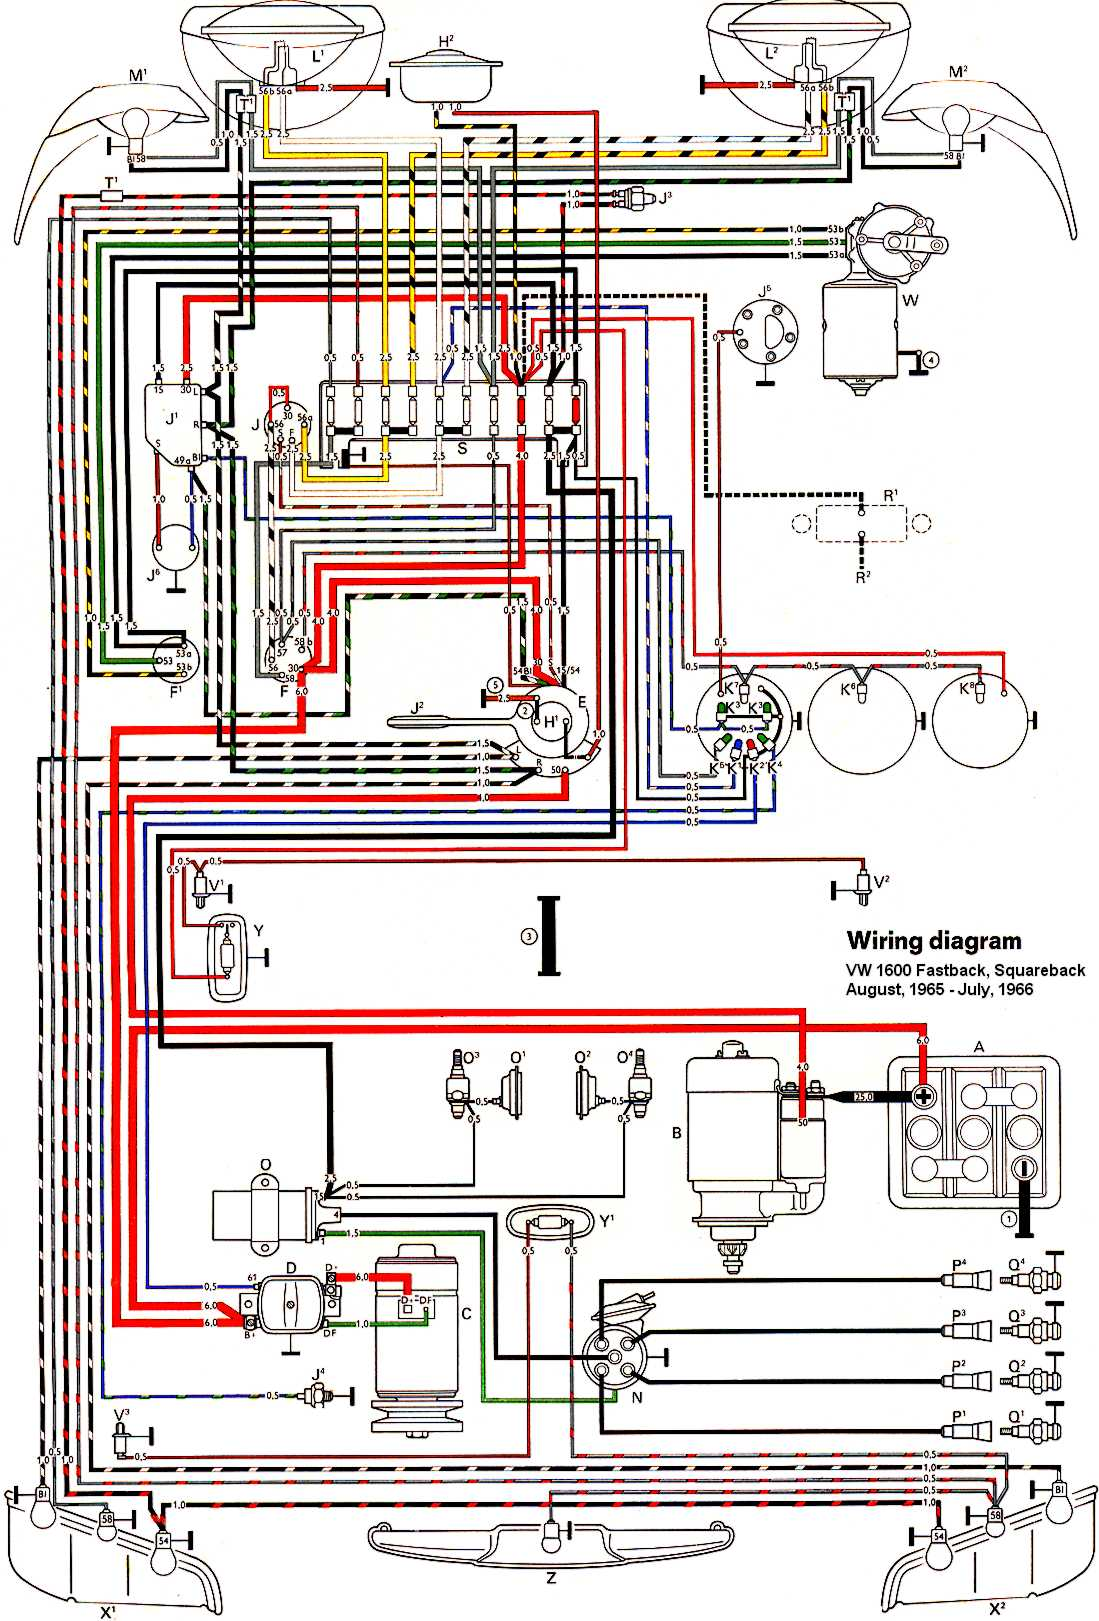 type3_1600_66 thesamba com type 3 wiring diagrams find wiring diagram for 87 ford f 150 at readyjetset.co